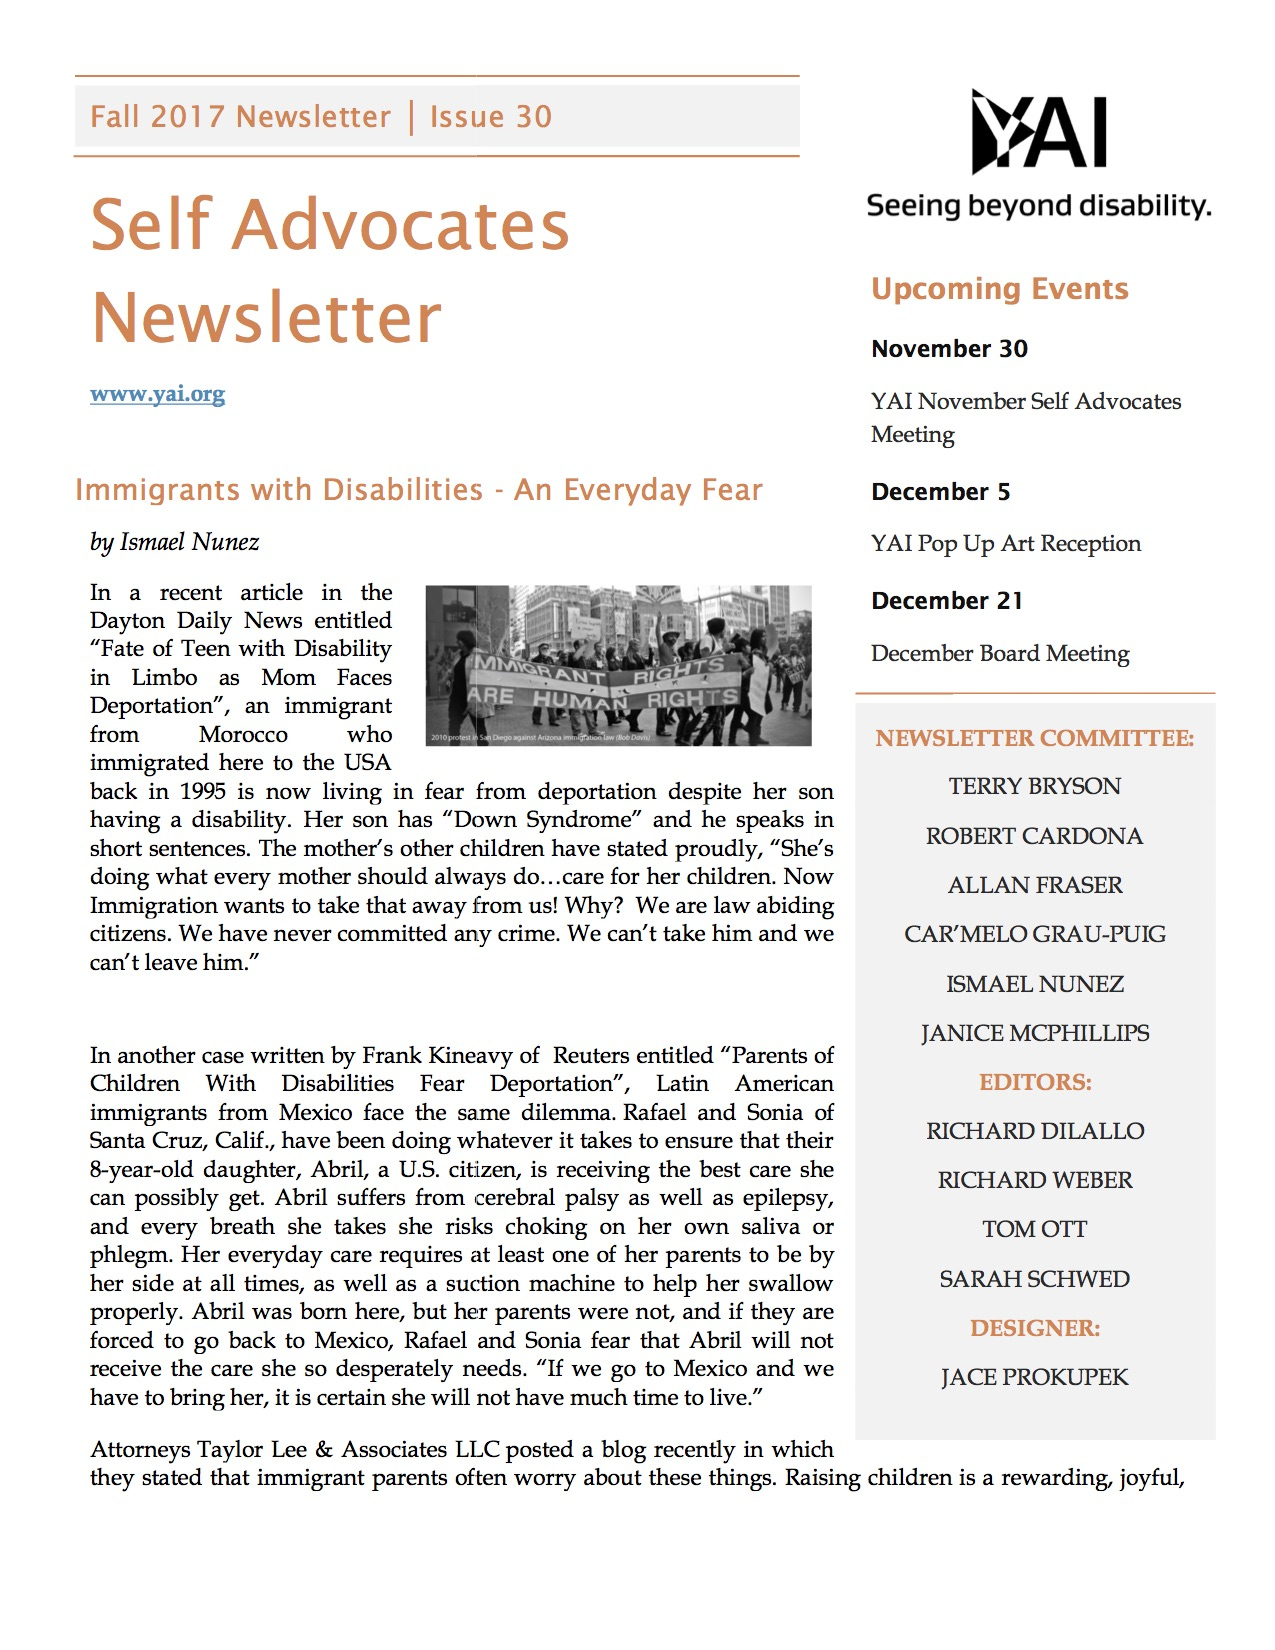 Image of the first page of the Fall 2017 Self Advocates Newsletter